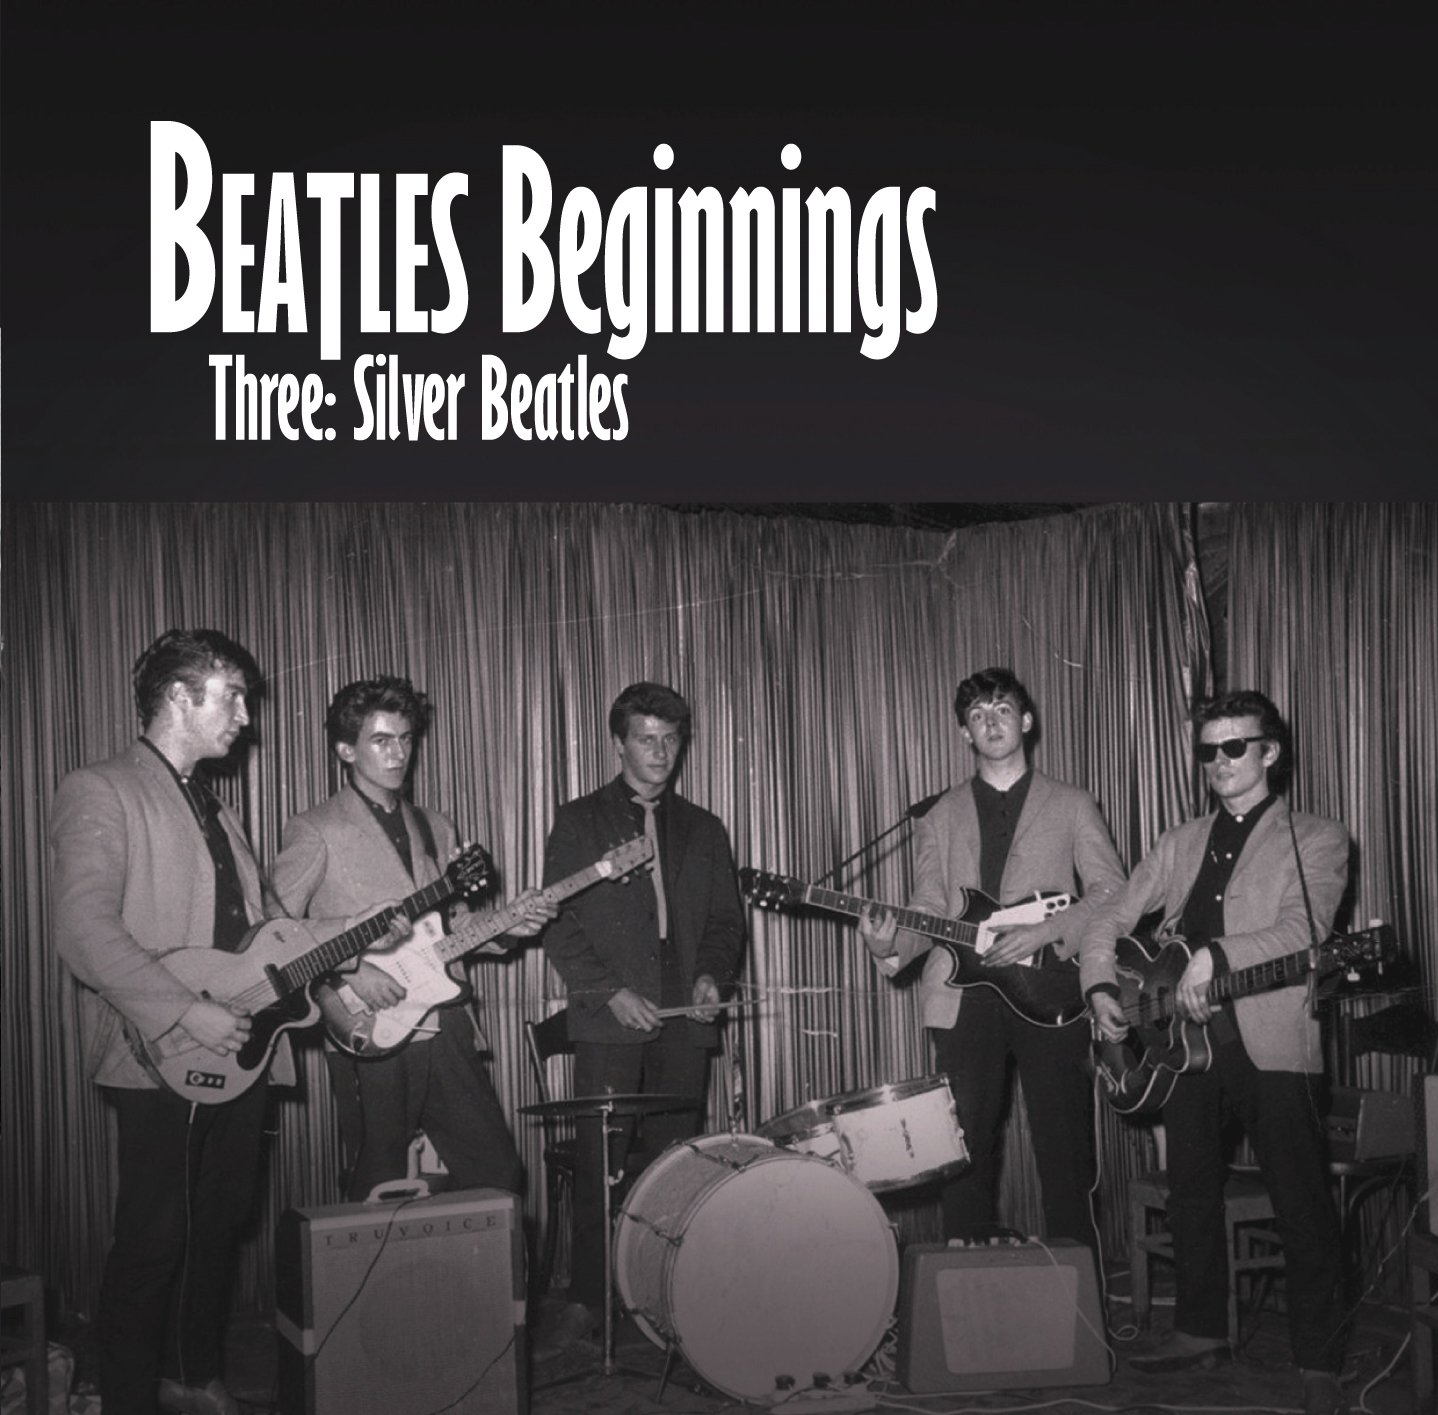 Beatles Beginnings Volume Three: Silver Beatles